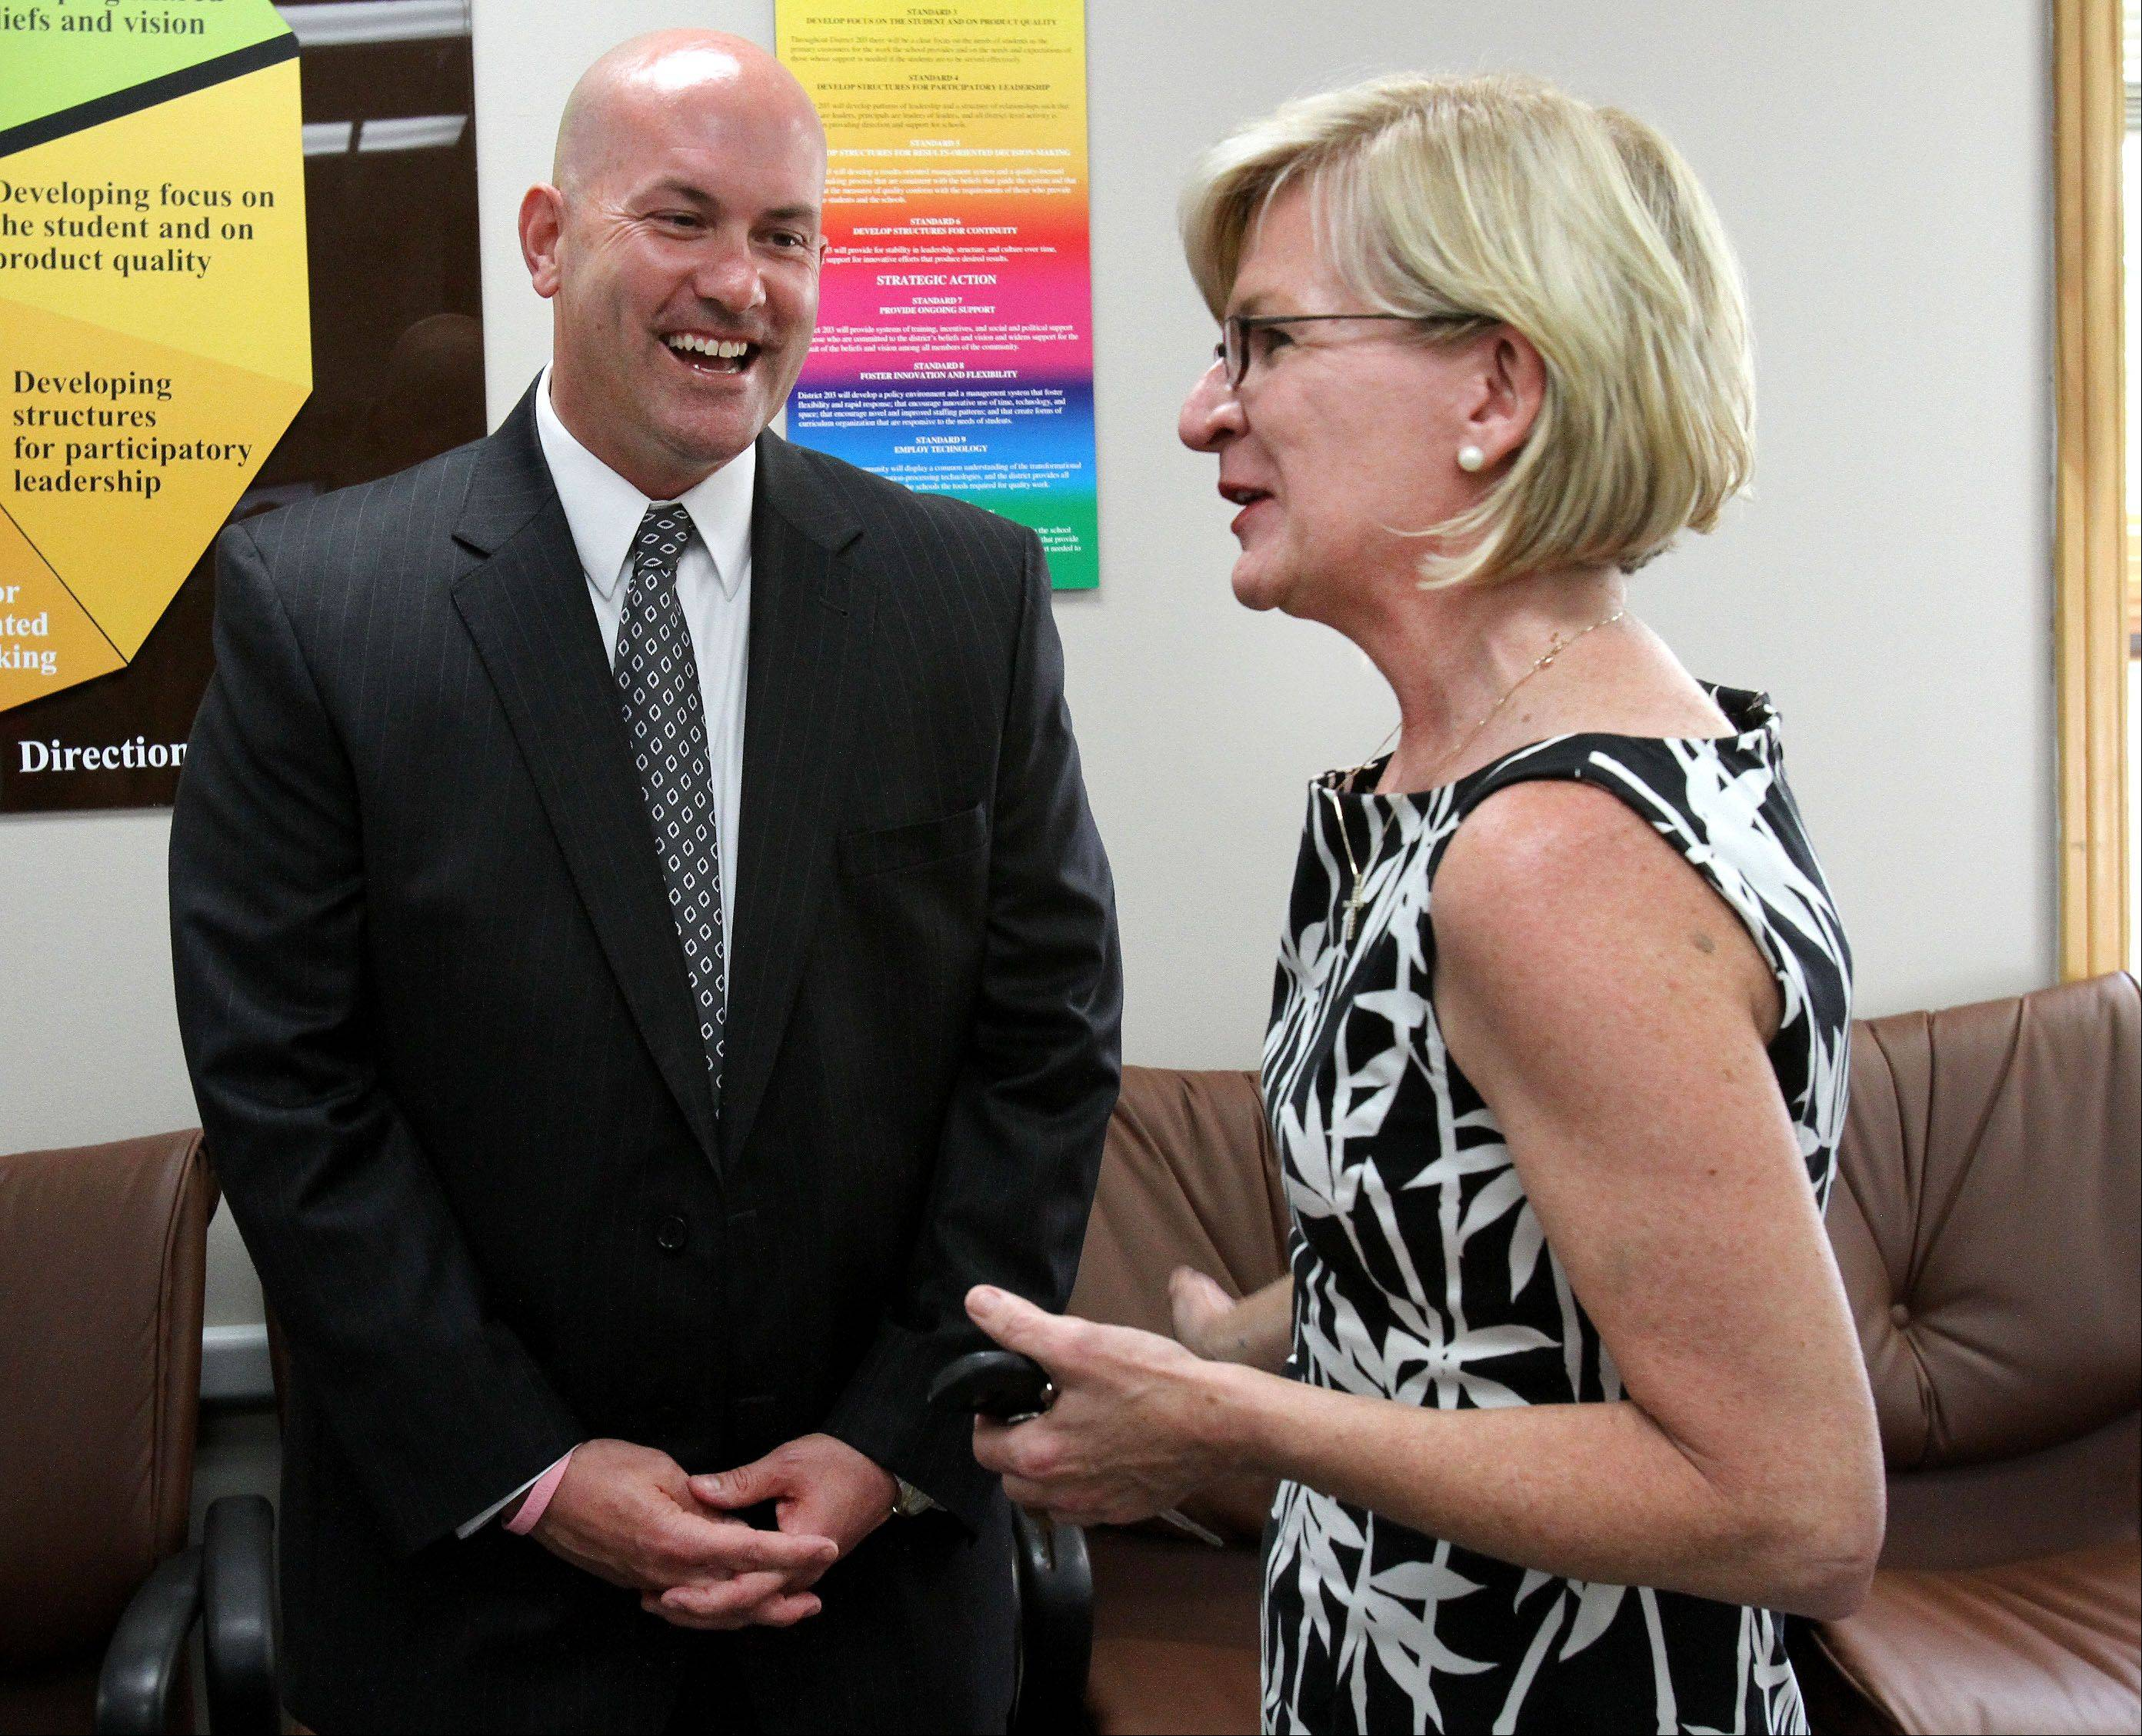 New Naperville Unit District 203 Superintendent Dan Bridges chats with State Representative Darlene Senger at a meet-and-greet reception on Tuesday.